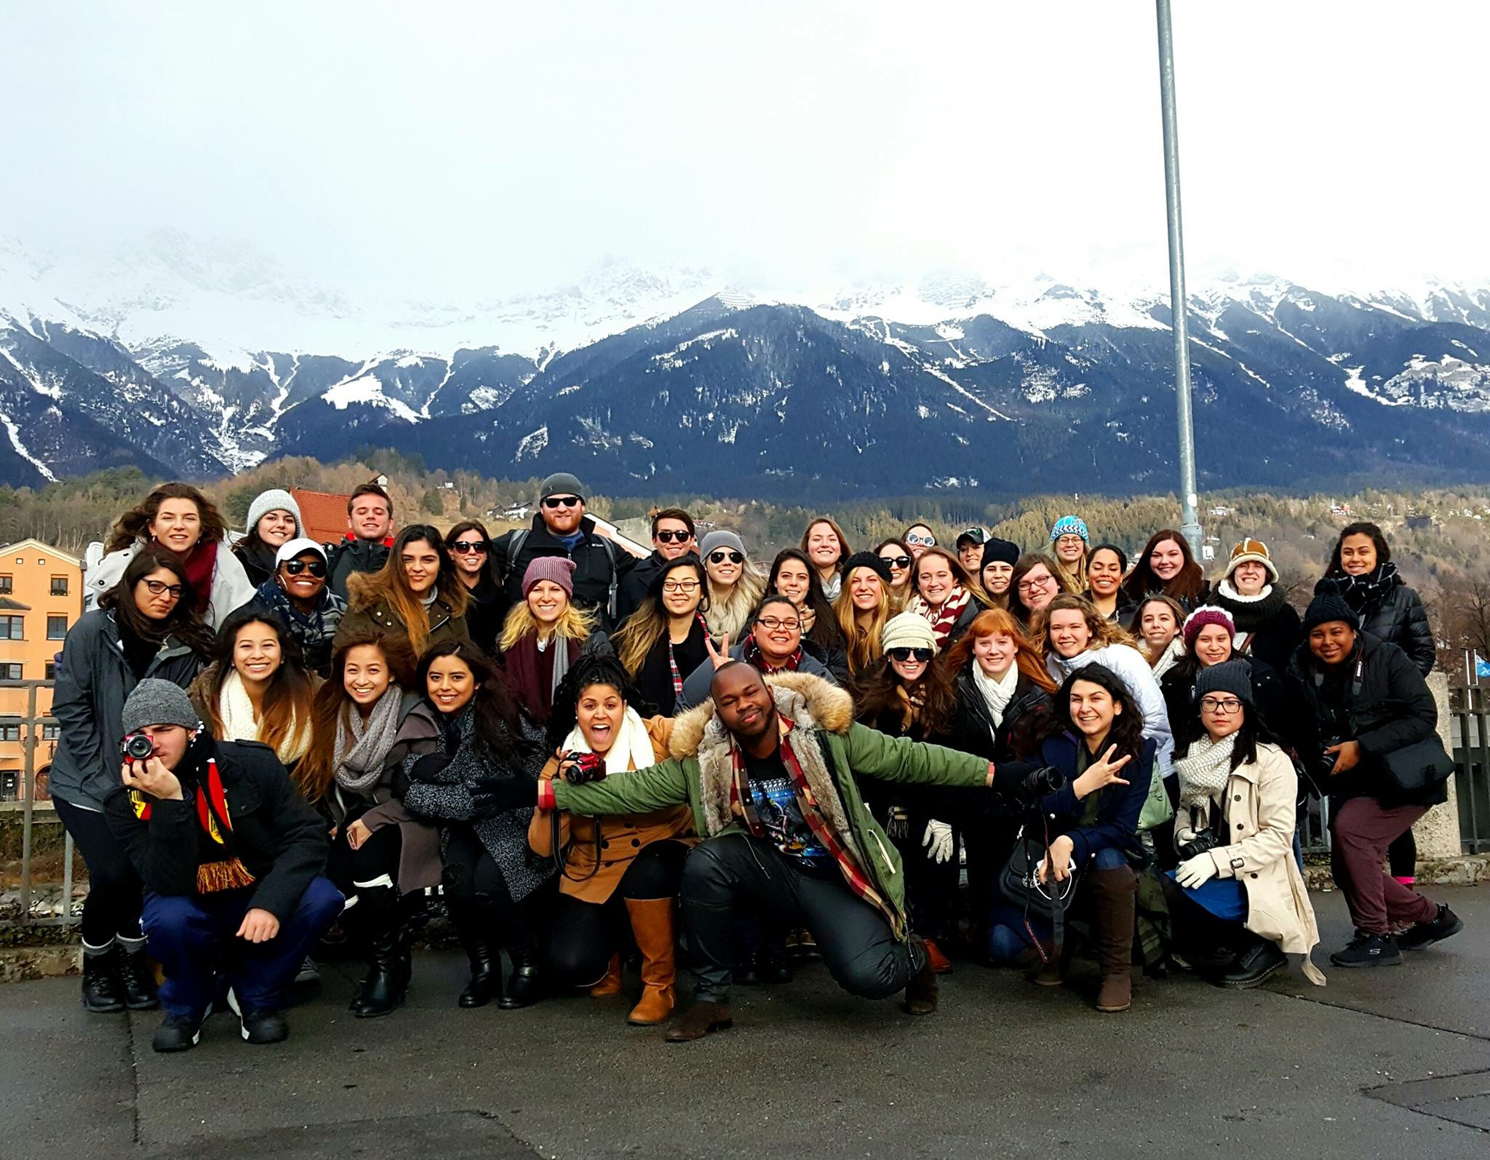 The whole group - there were about 40 people on this trip.